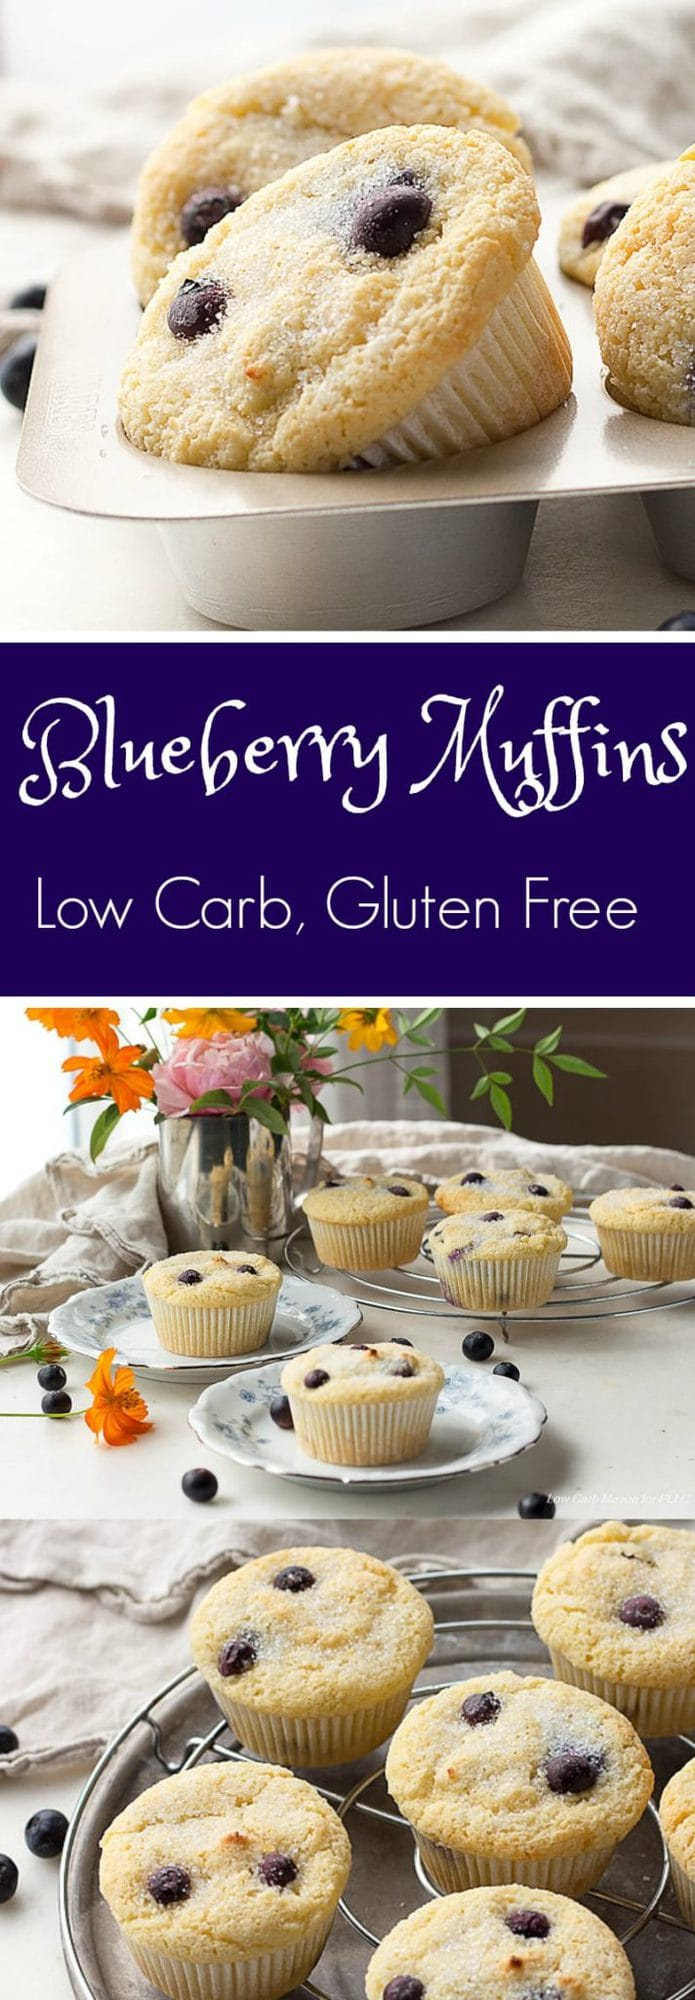 Blueberry Muffins - Low Carb, Gluten Free | Peace Love and Low Carb